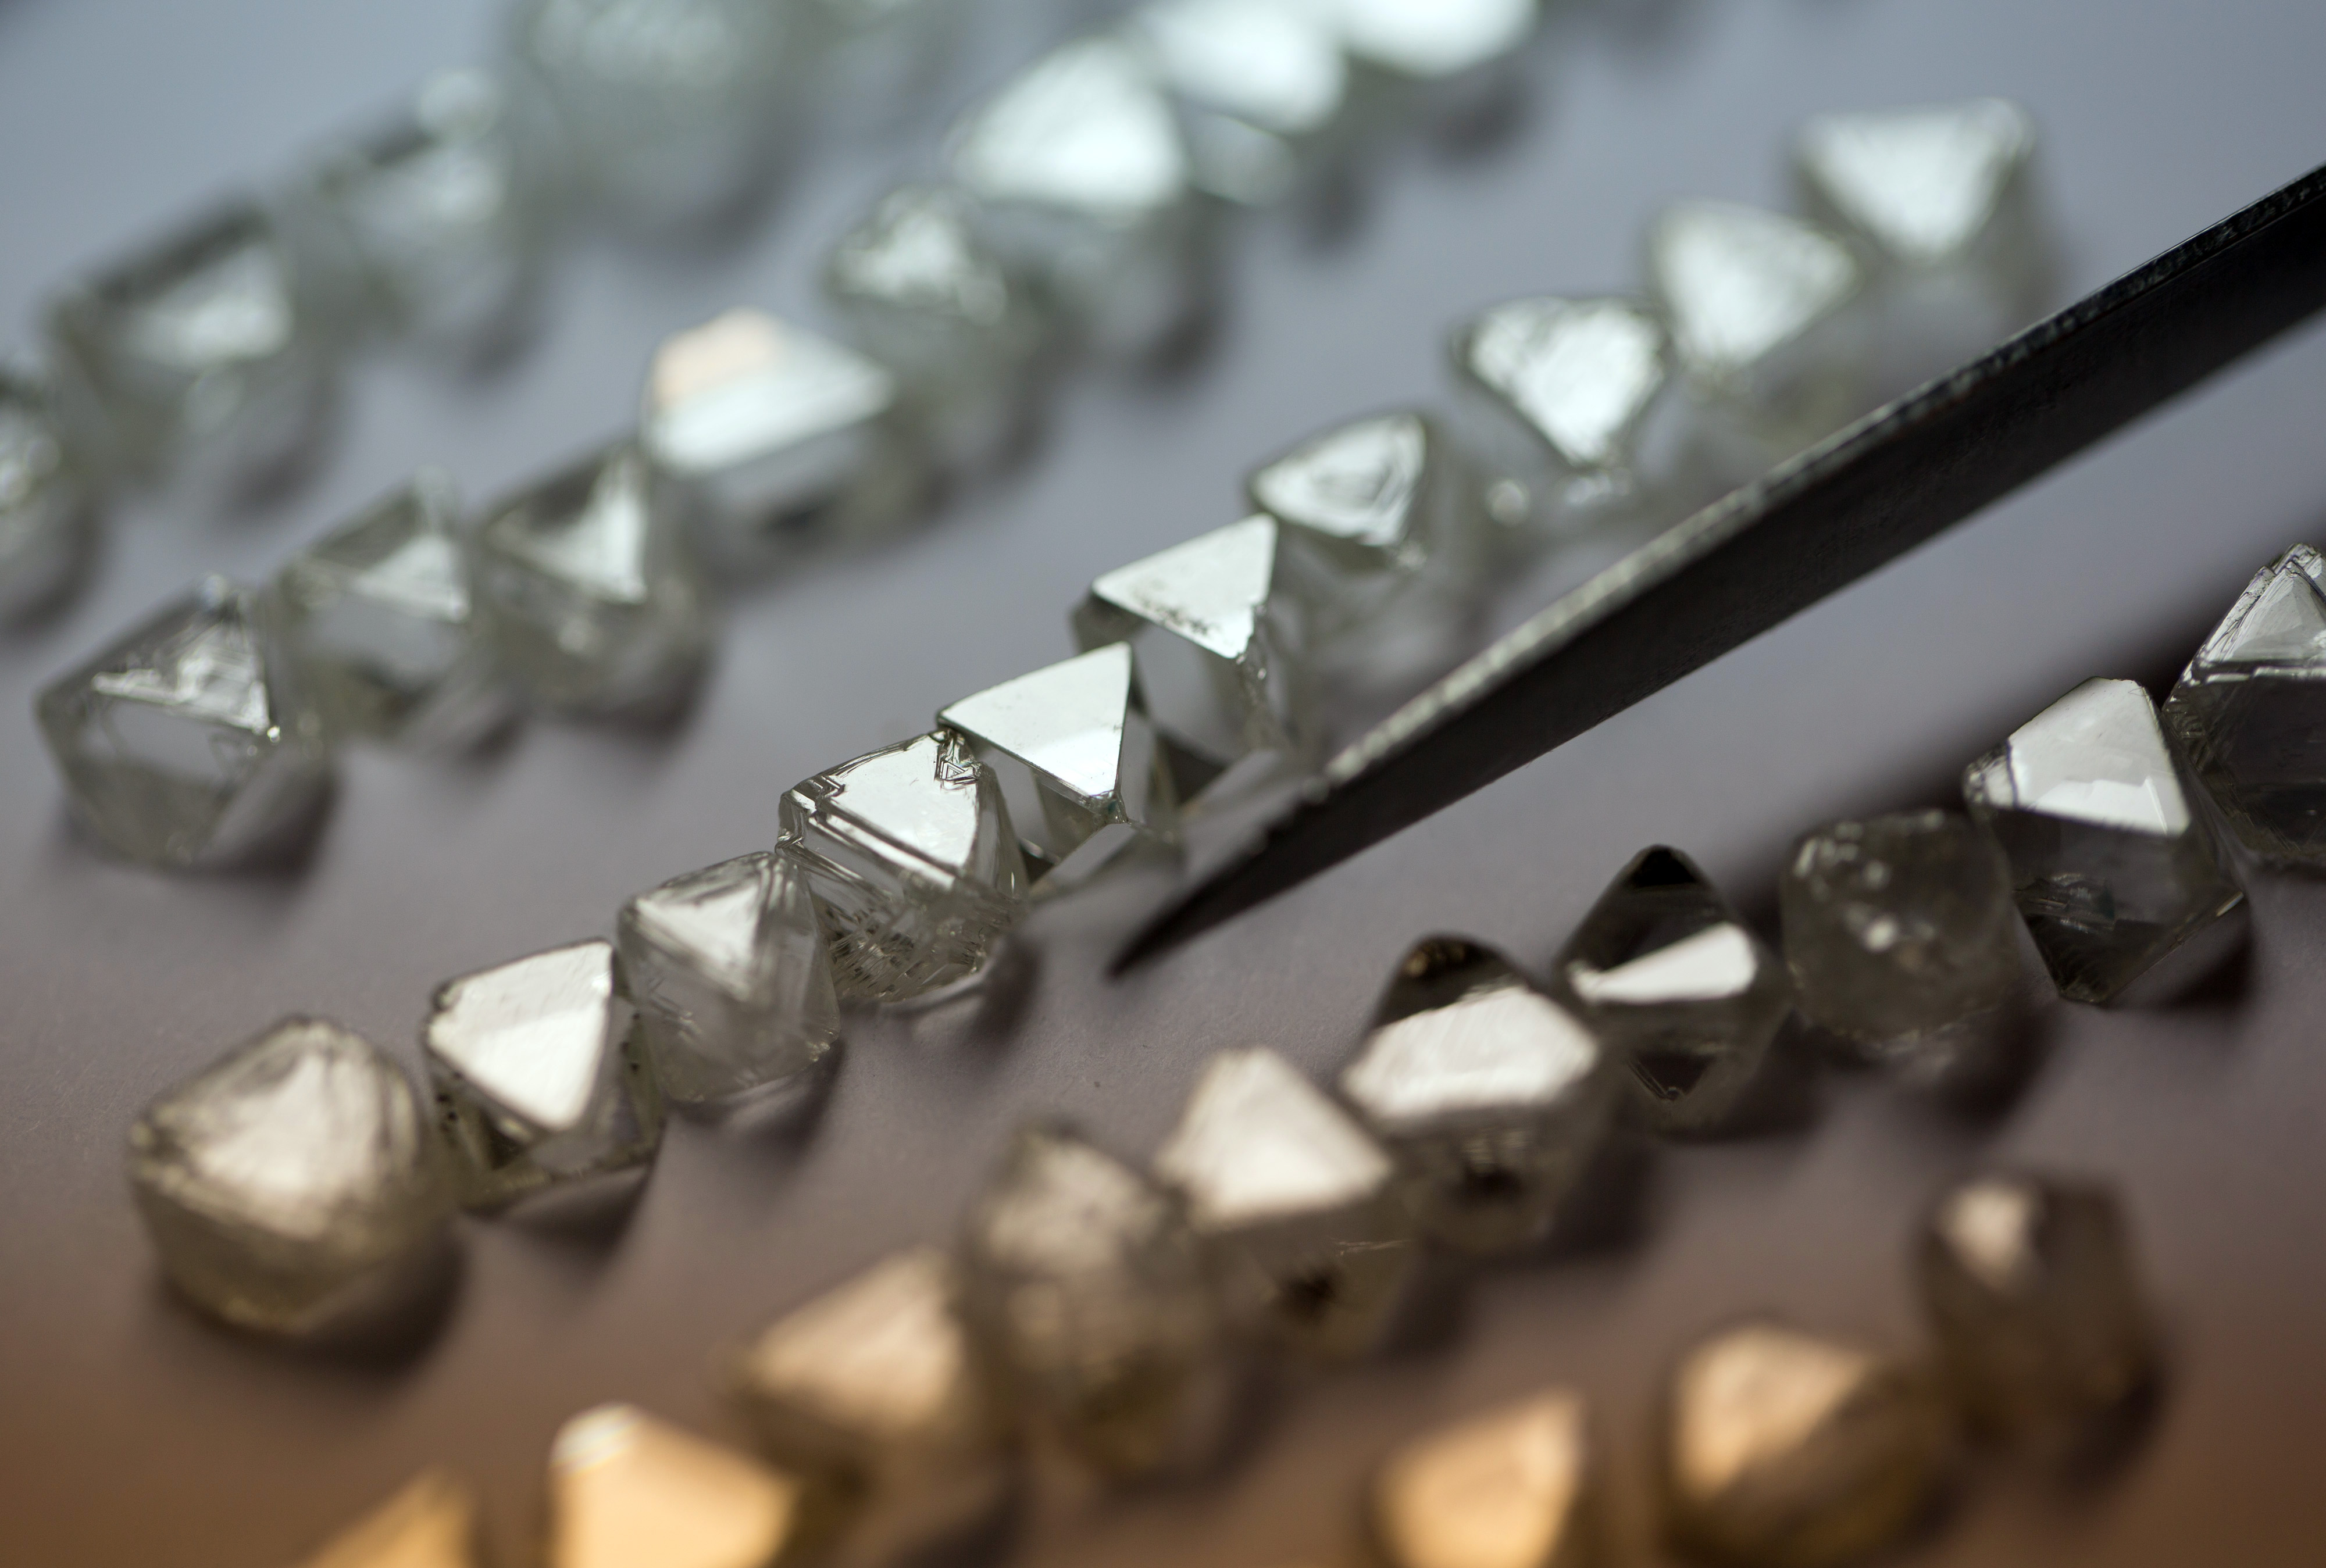 A collection of natural diamonds are seen laid in rows on a